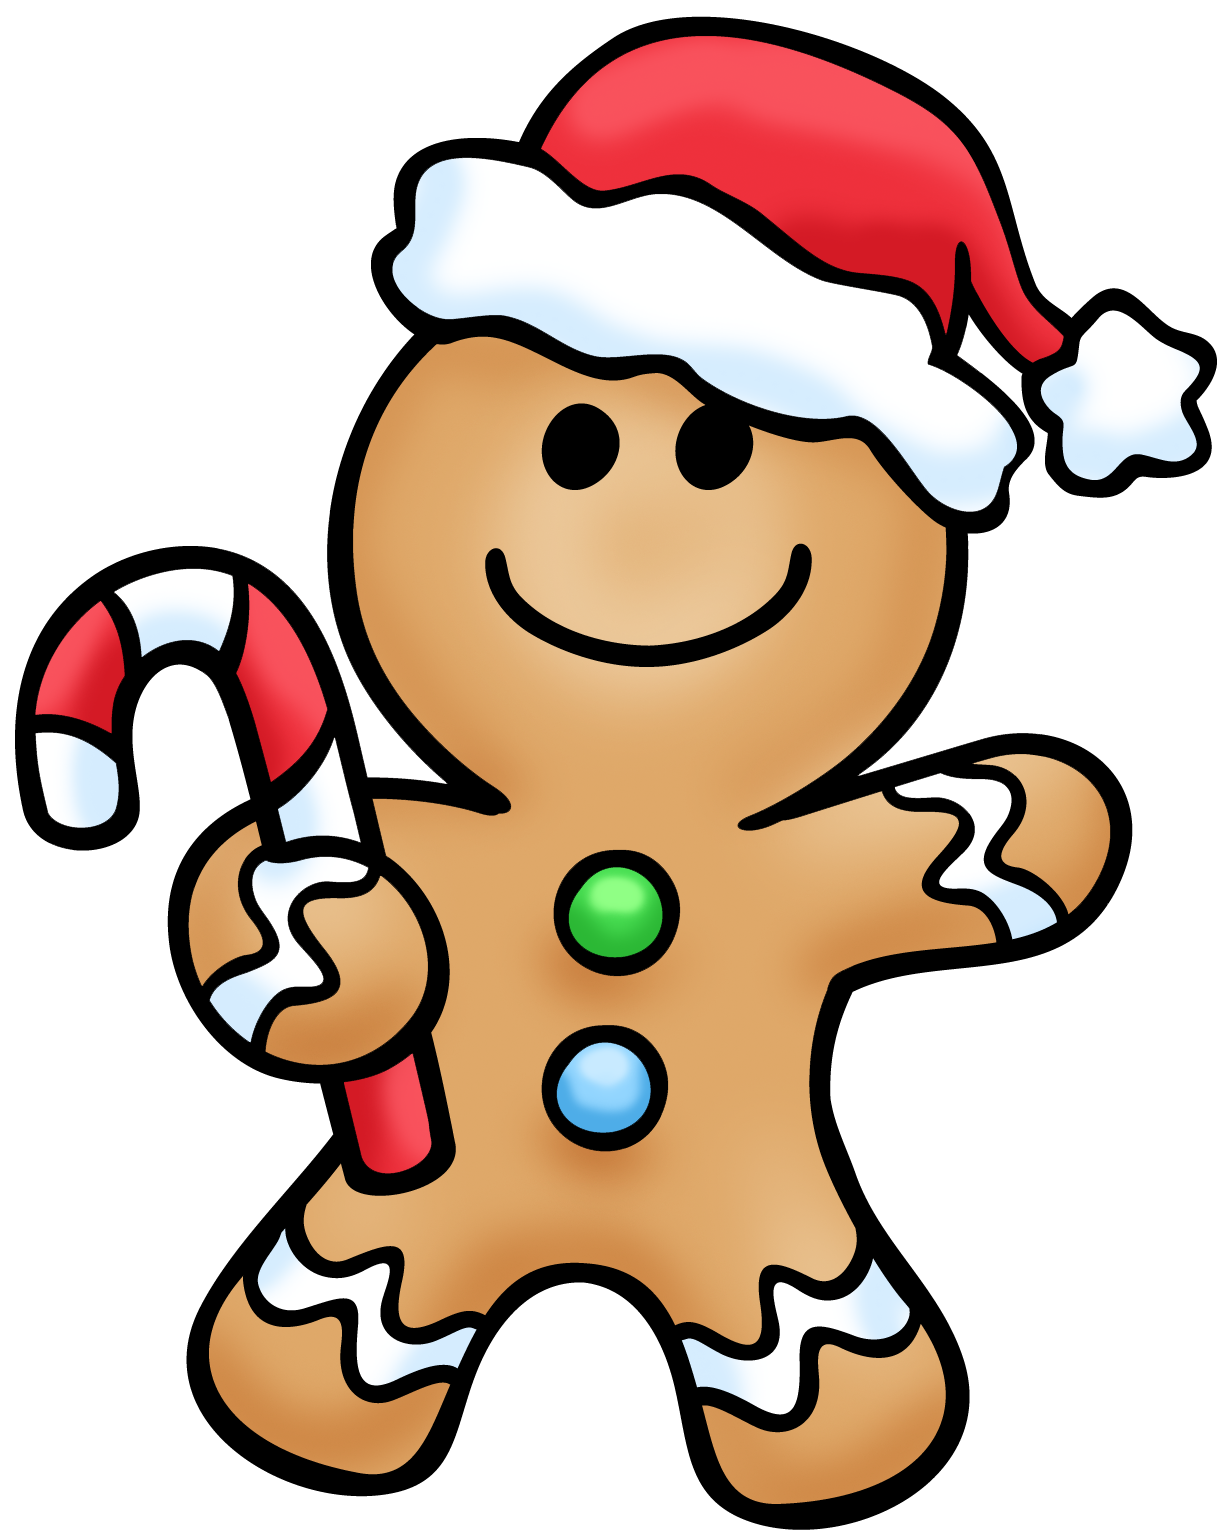 Gingerbread clipart #10